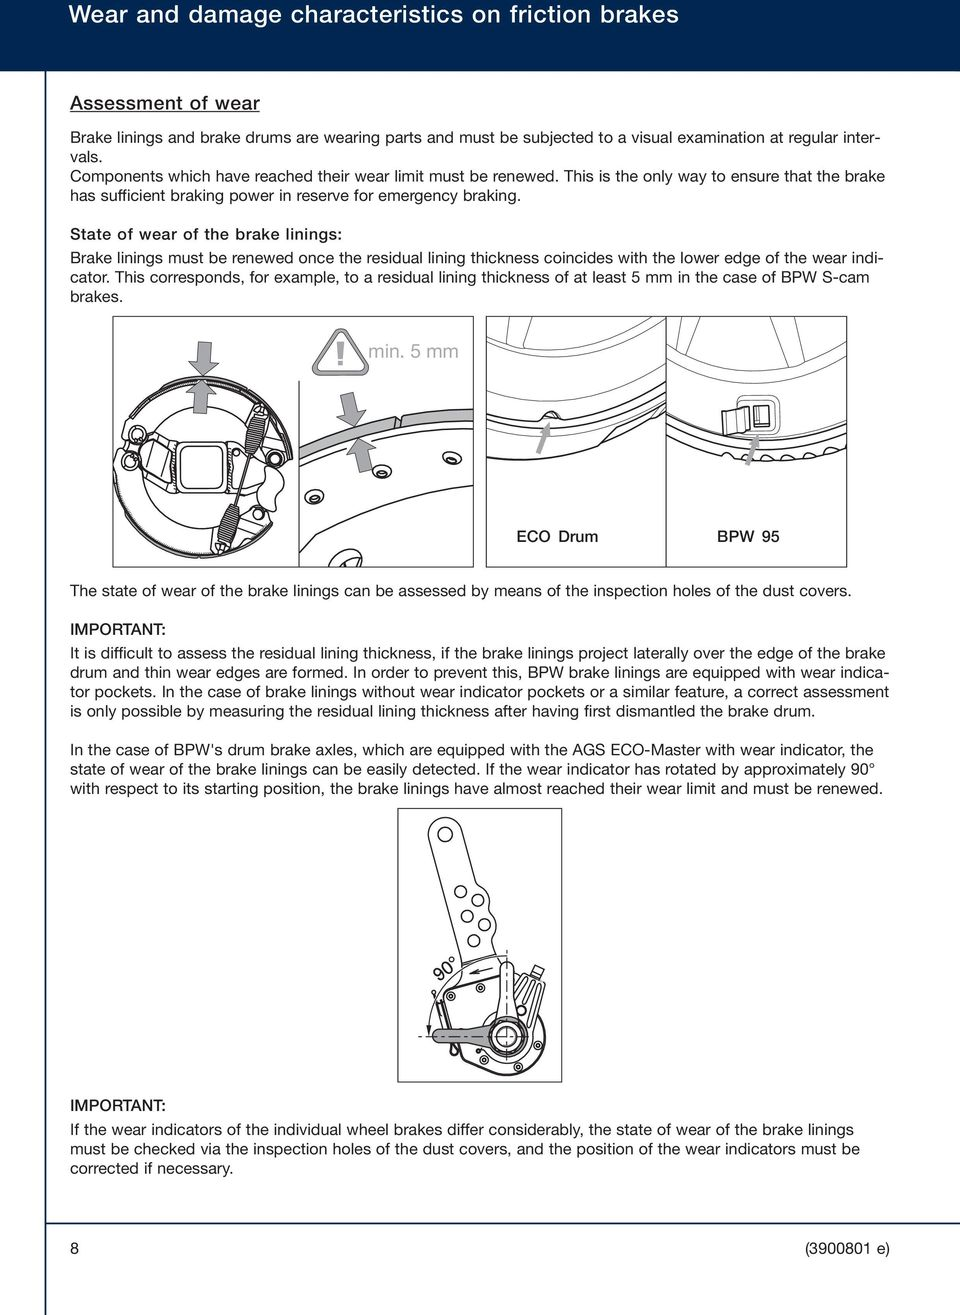 Bpw The Quality Factor Wear And Damage Characteristics On Friction Exploded Diagram Of Drum Brake State Linings Must Be Renewed Once Residual